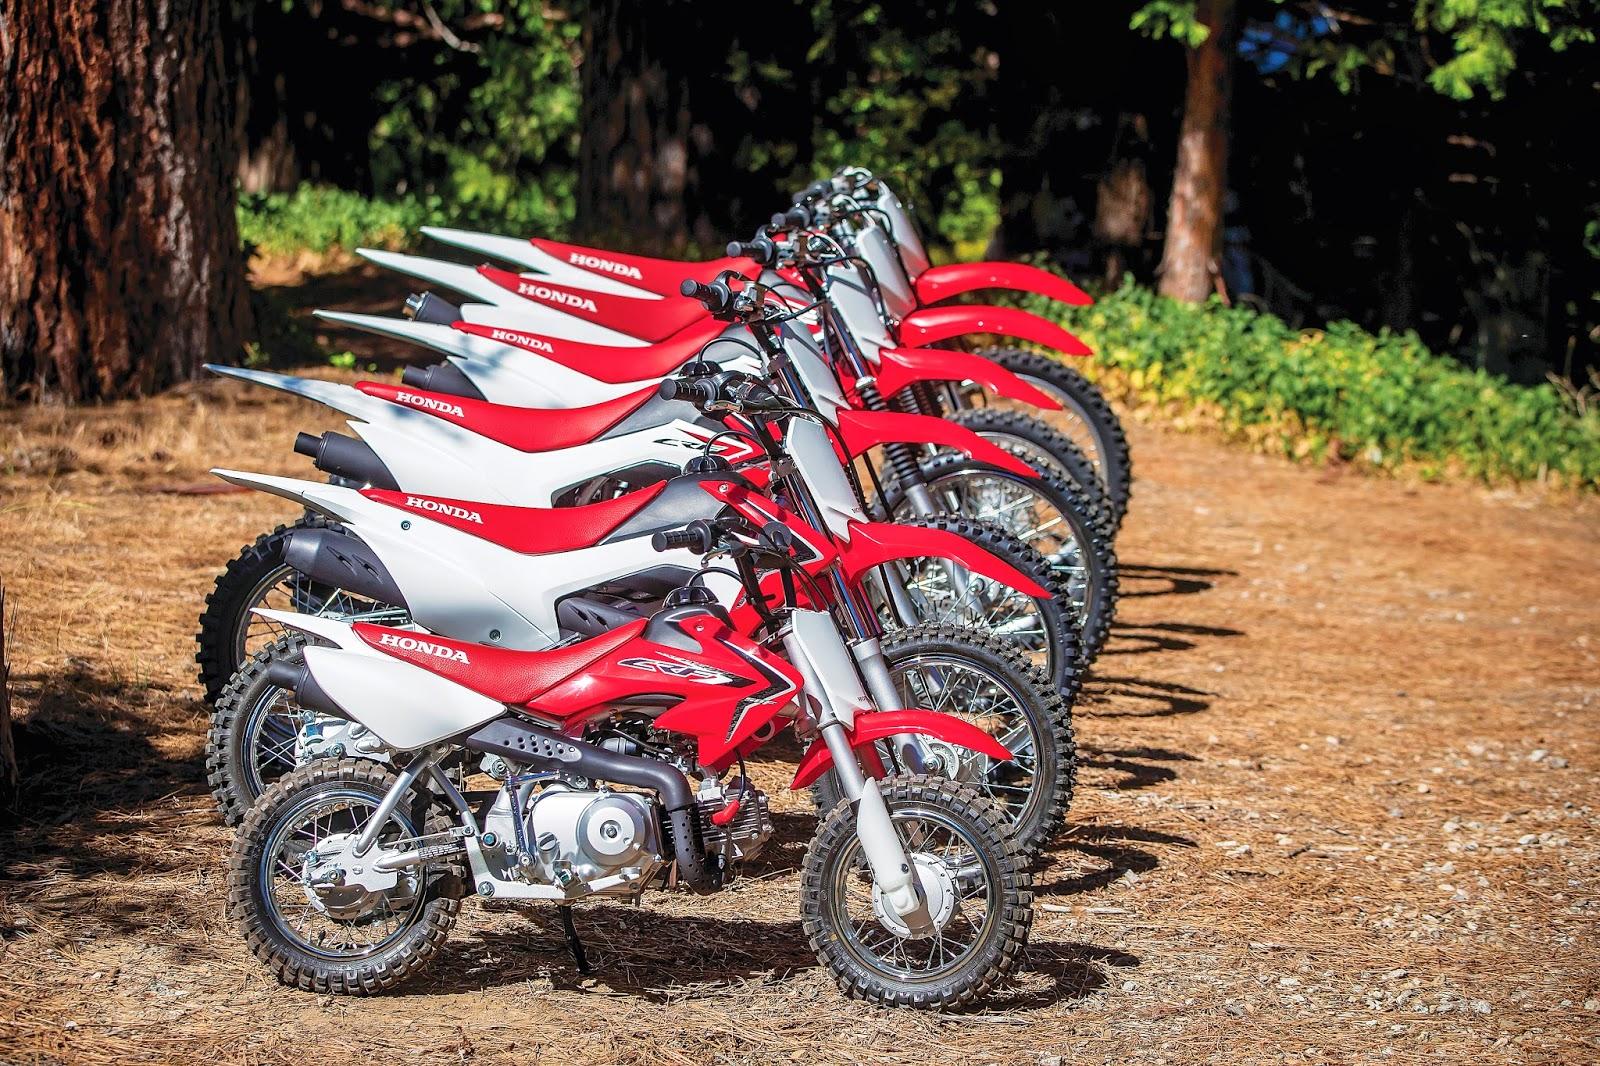 Honda CRF A-Z Motorcycle Images